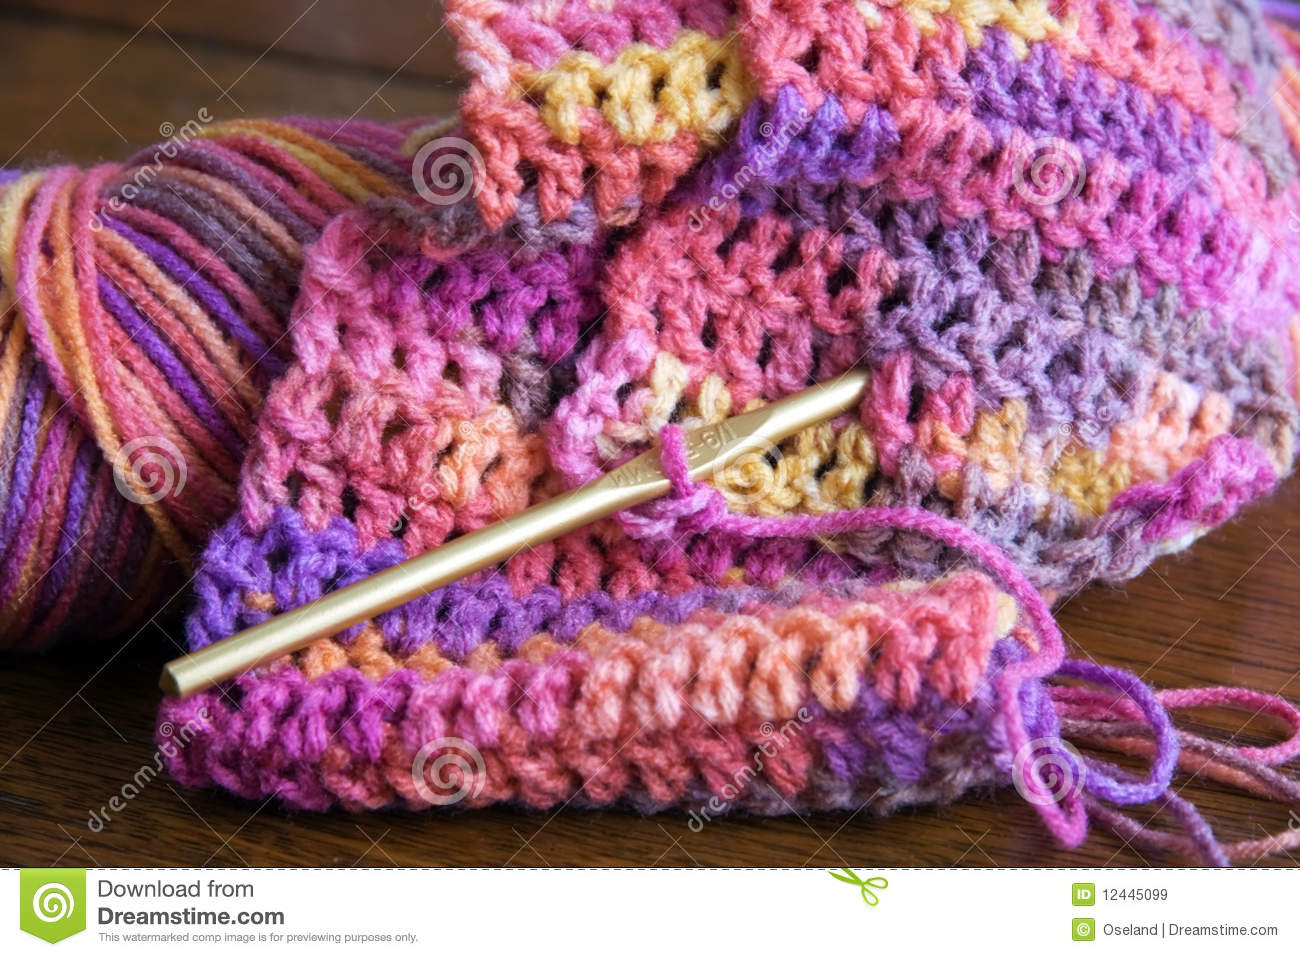 Crochet Hook and Yarn Best Of Crochet Yarn and Crochet Hook Royalty Free Stock Of Superb 44 Images Crochet Hook and Yarn